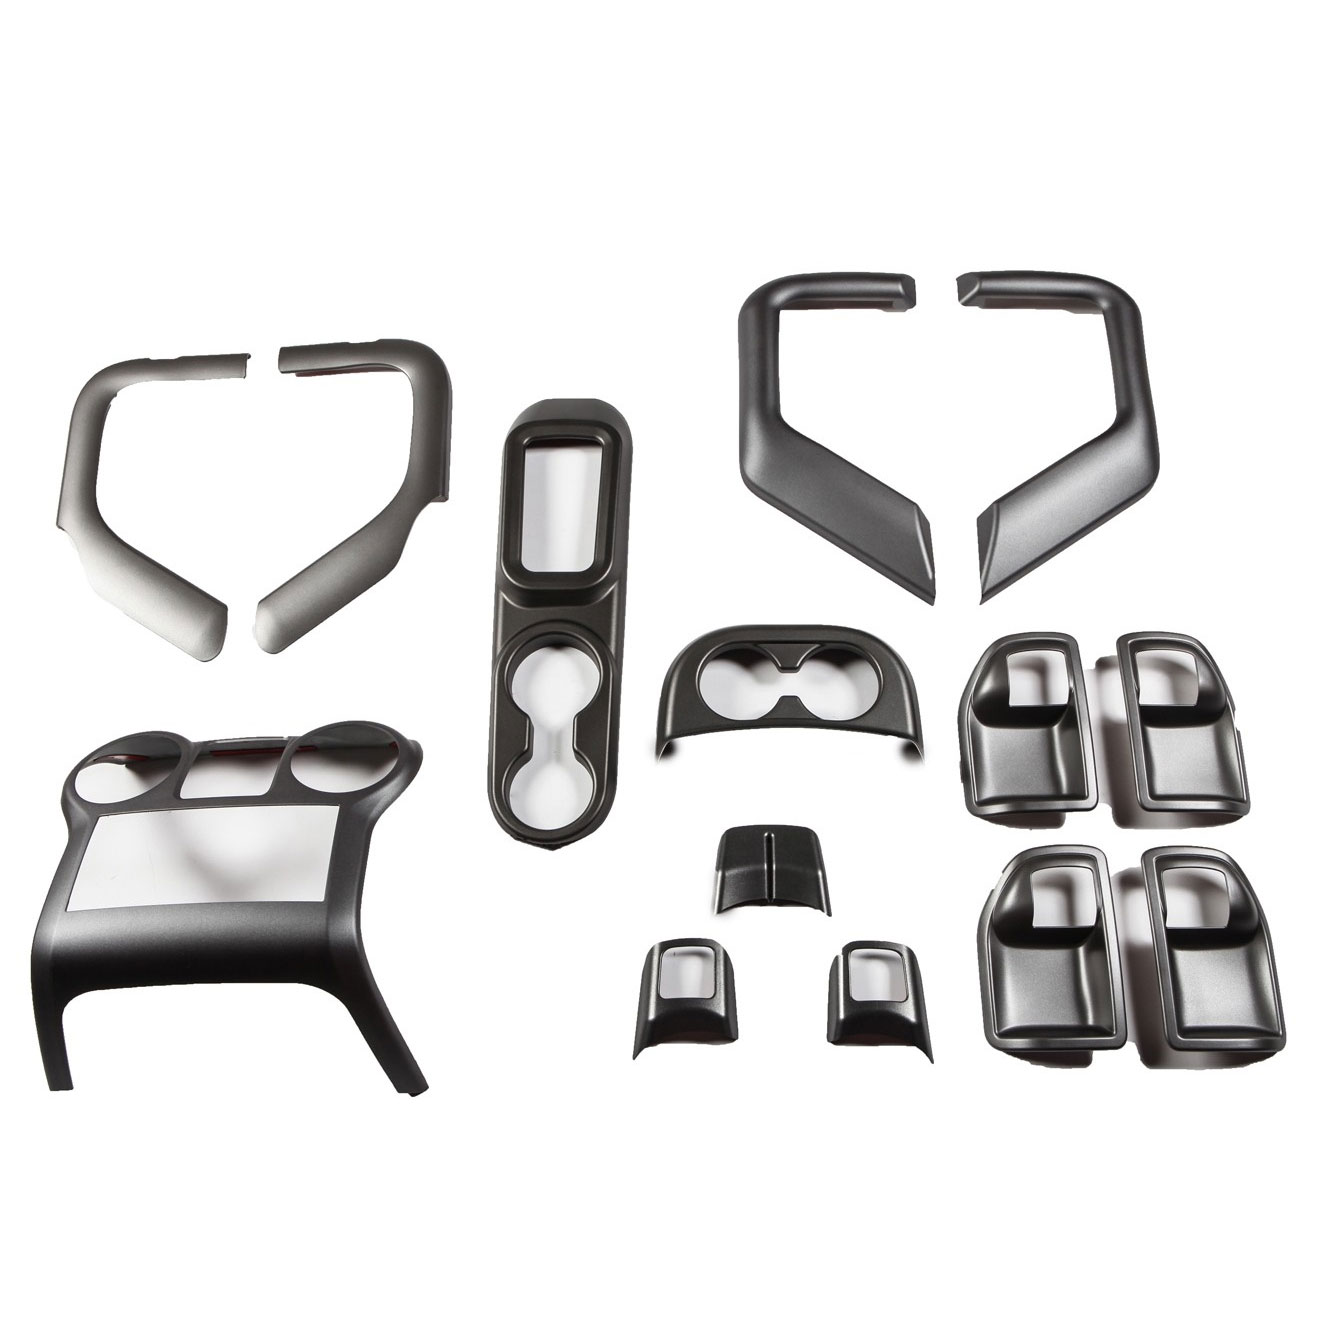 Interior Trim Accent Kit, Charcoal, 11-17 Wranglers 4 Doors Auto Trans